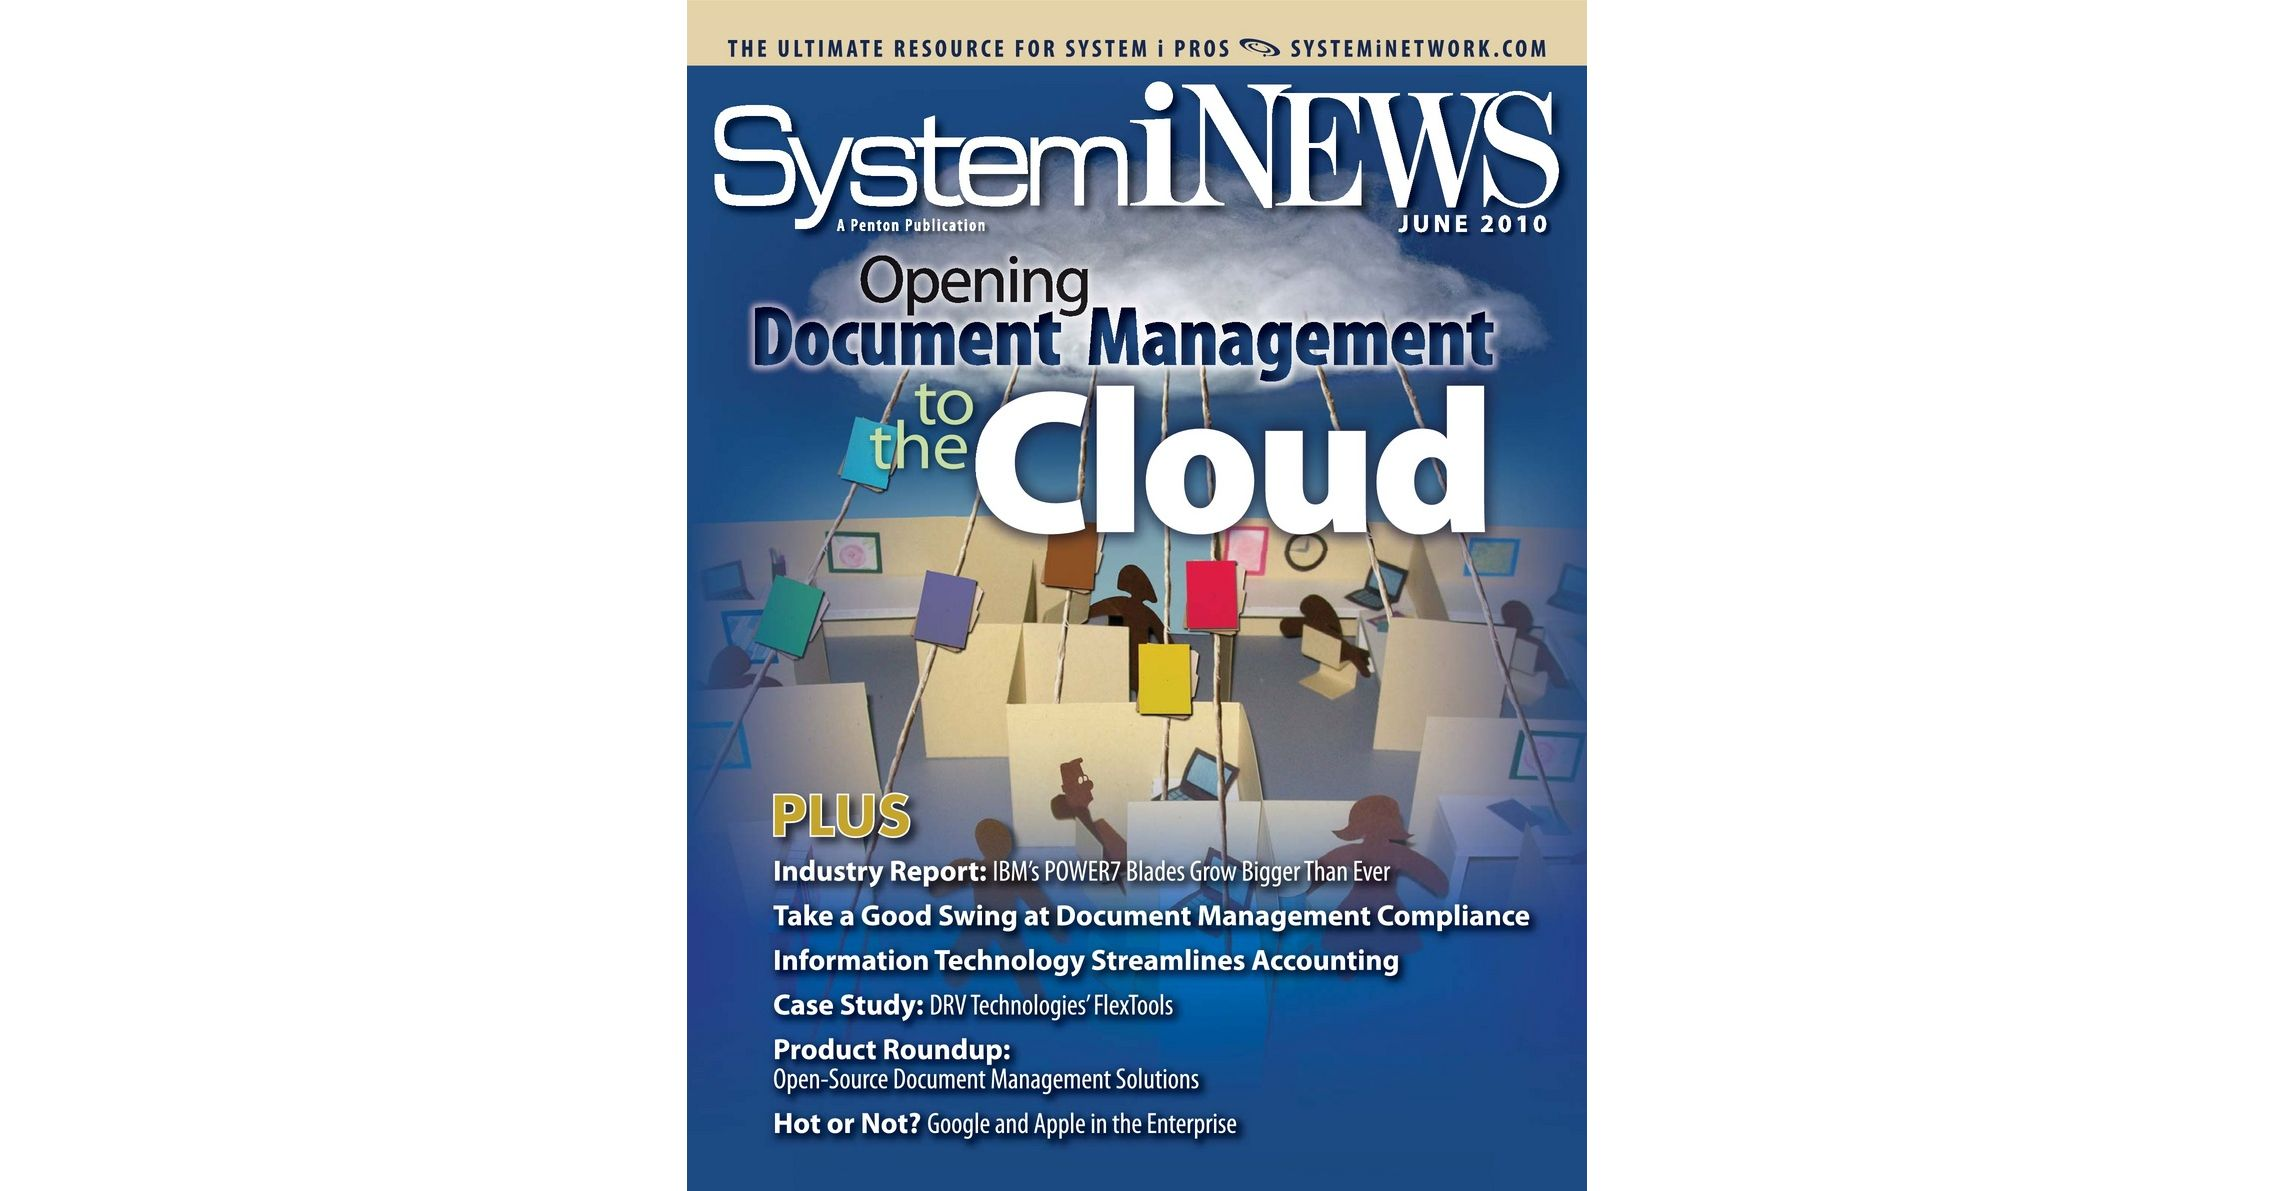 SystemiNEWS